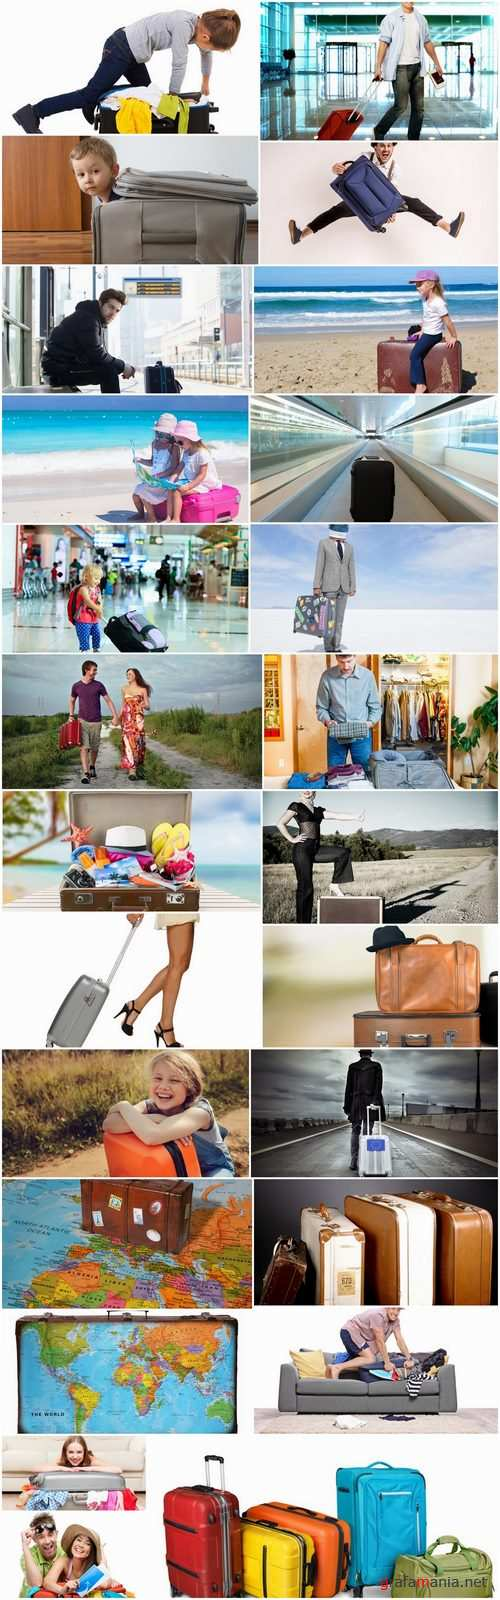 Bag valise inventory for tourism travel vacation holiday 25 HQ Jpeg